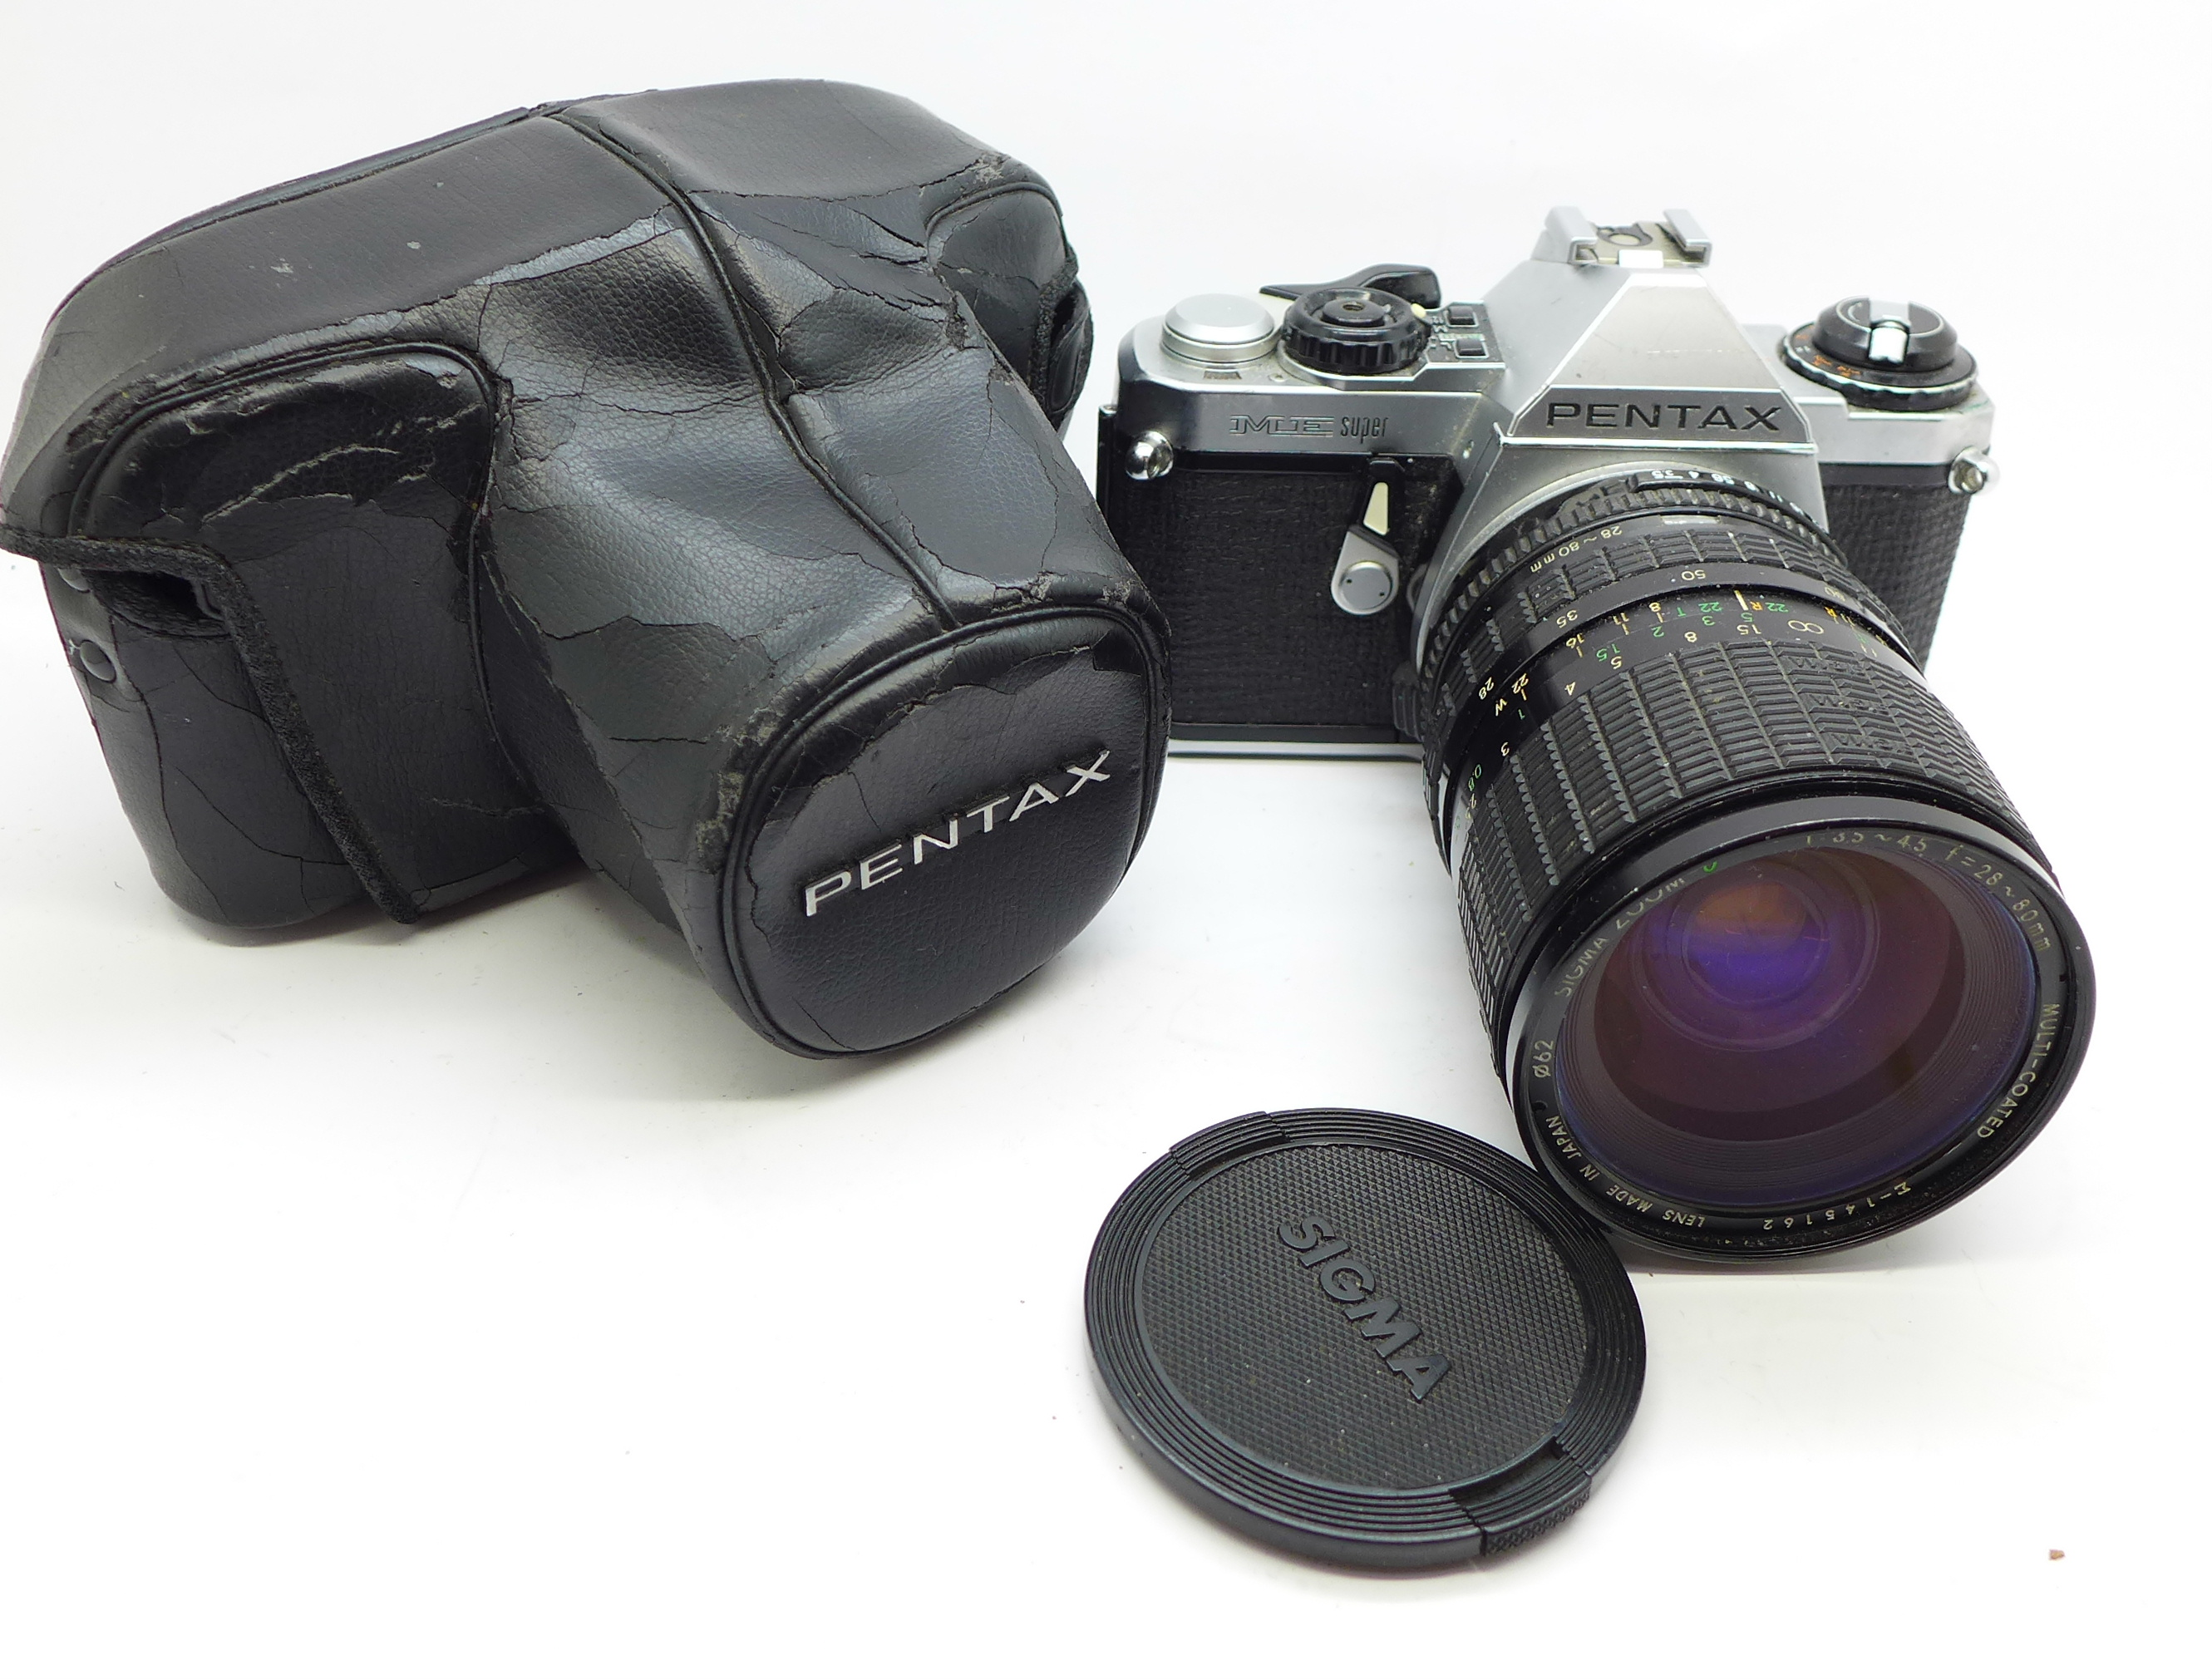 Lot 636 - A Pentax ME Super camera with Sigma 28-80mm f3.5-4.